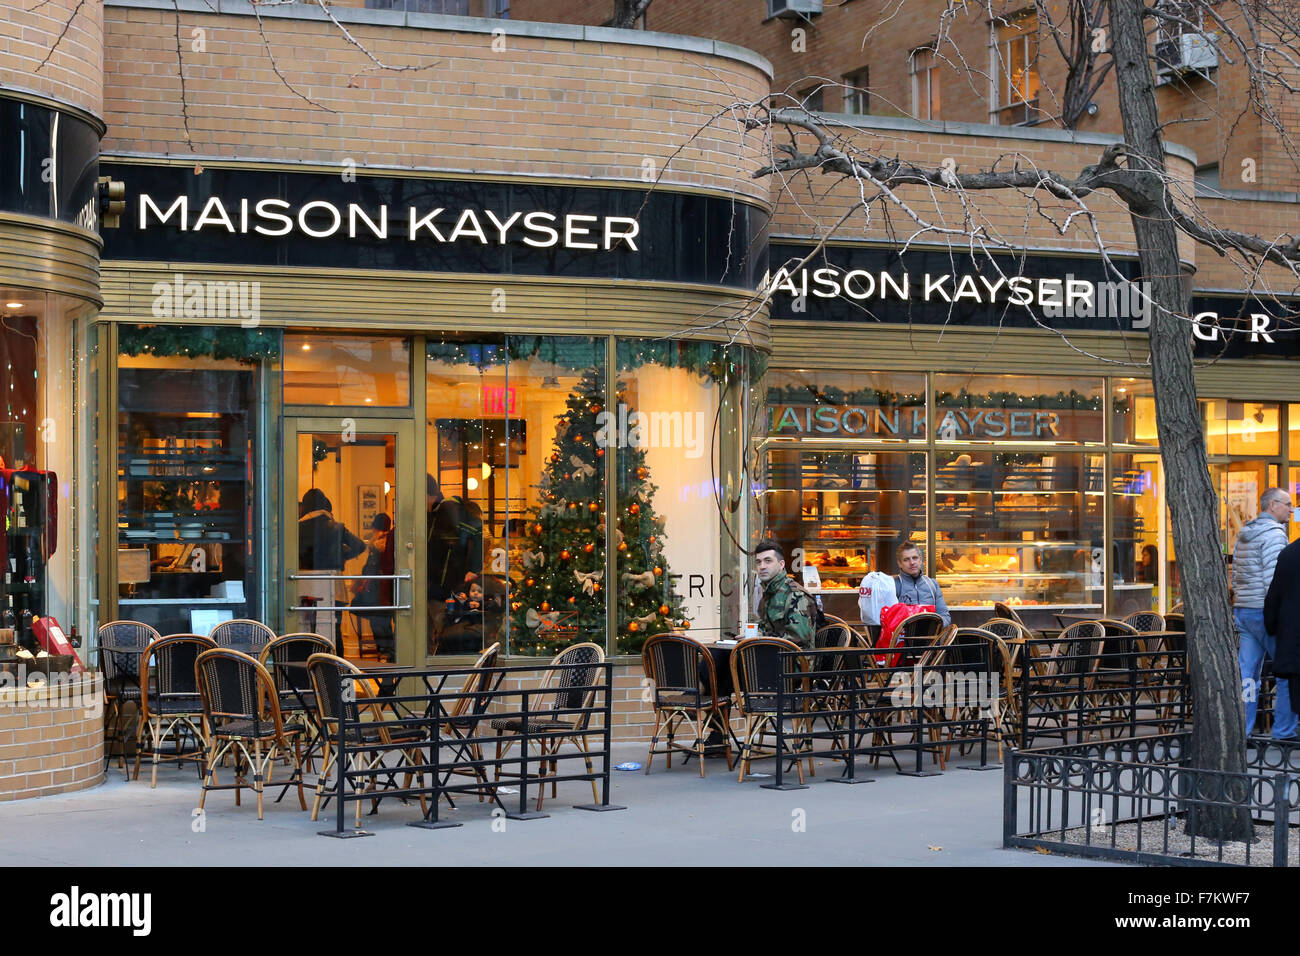 Maison kayser columbus circle location in new york city for Maison a new york